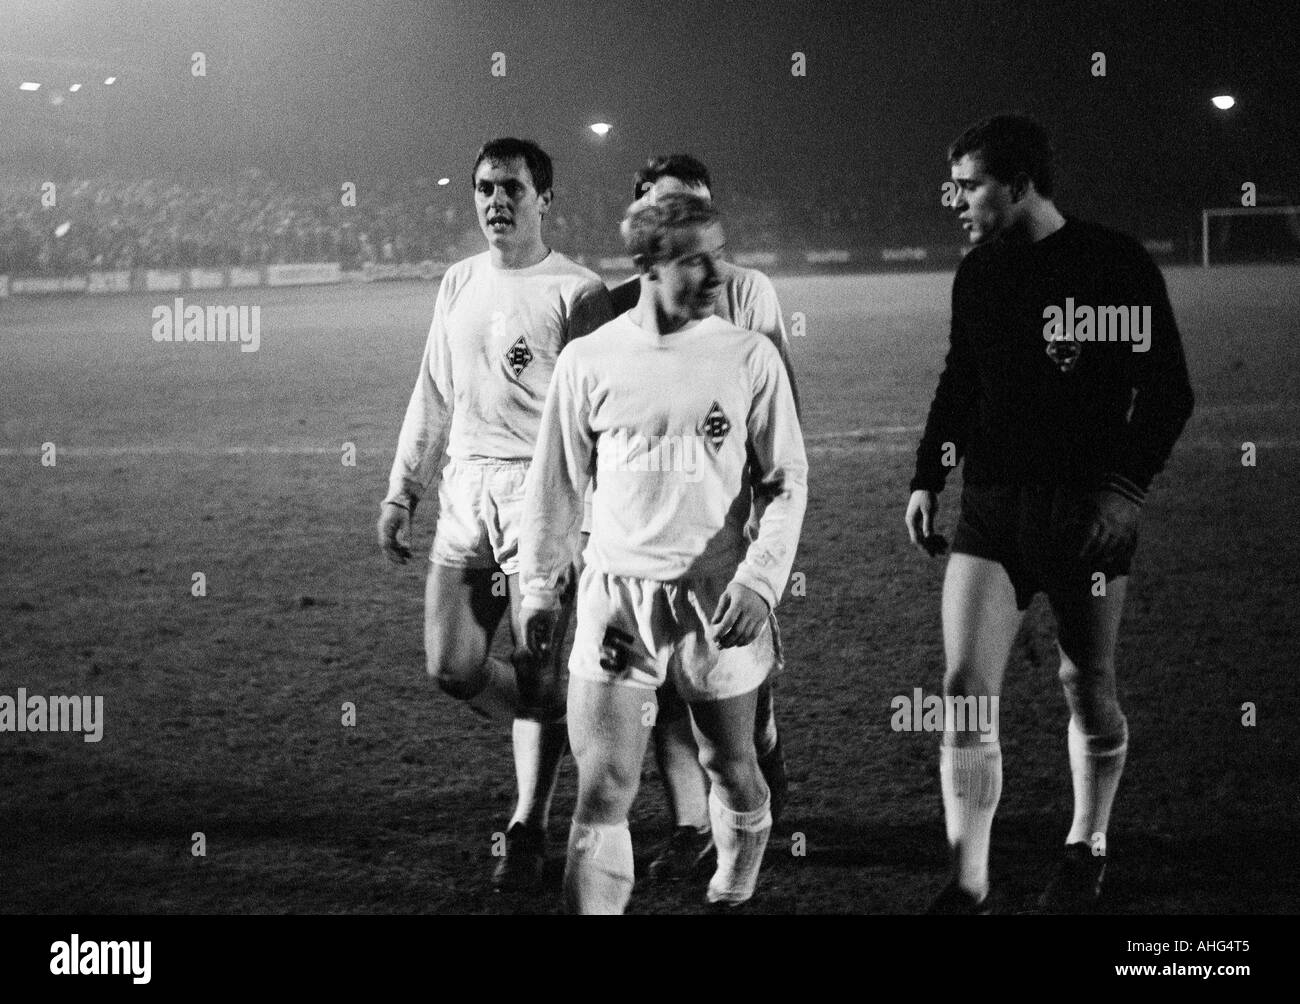 football, Bundesliga, 1967/1968, Muengersdorfer Stadium in Cologne, 1. FC Cologne versus Borussia Moenchengladbach 2:5, football players leaving the pitch, f.l.t.r. Peter Meyer, Berti Vogts, keeper Volker Danner (all MG) - Stock Image